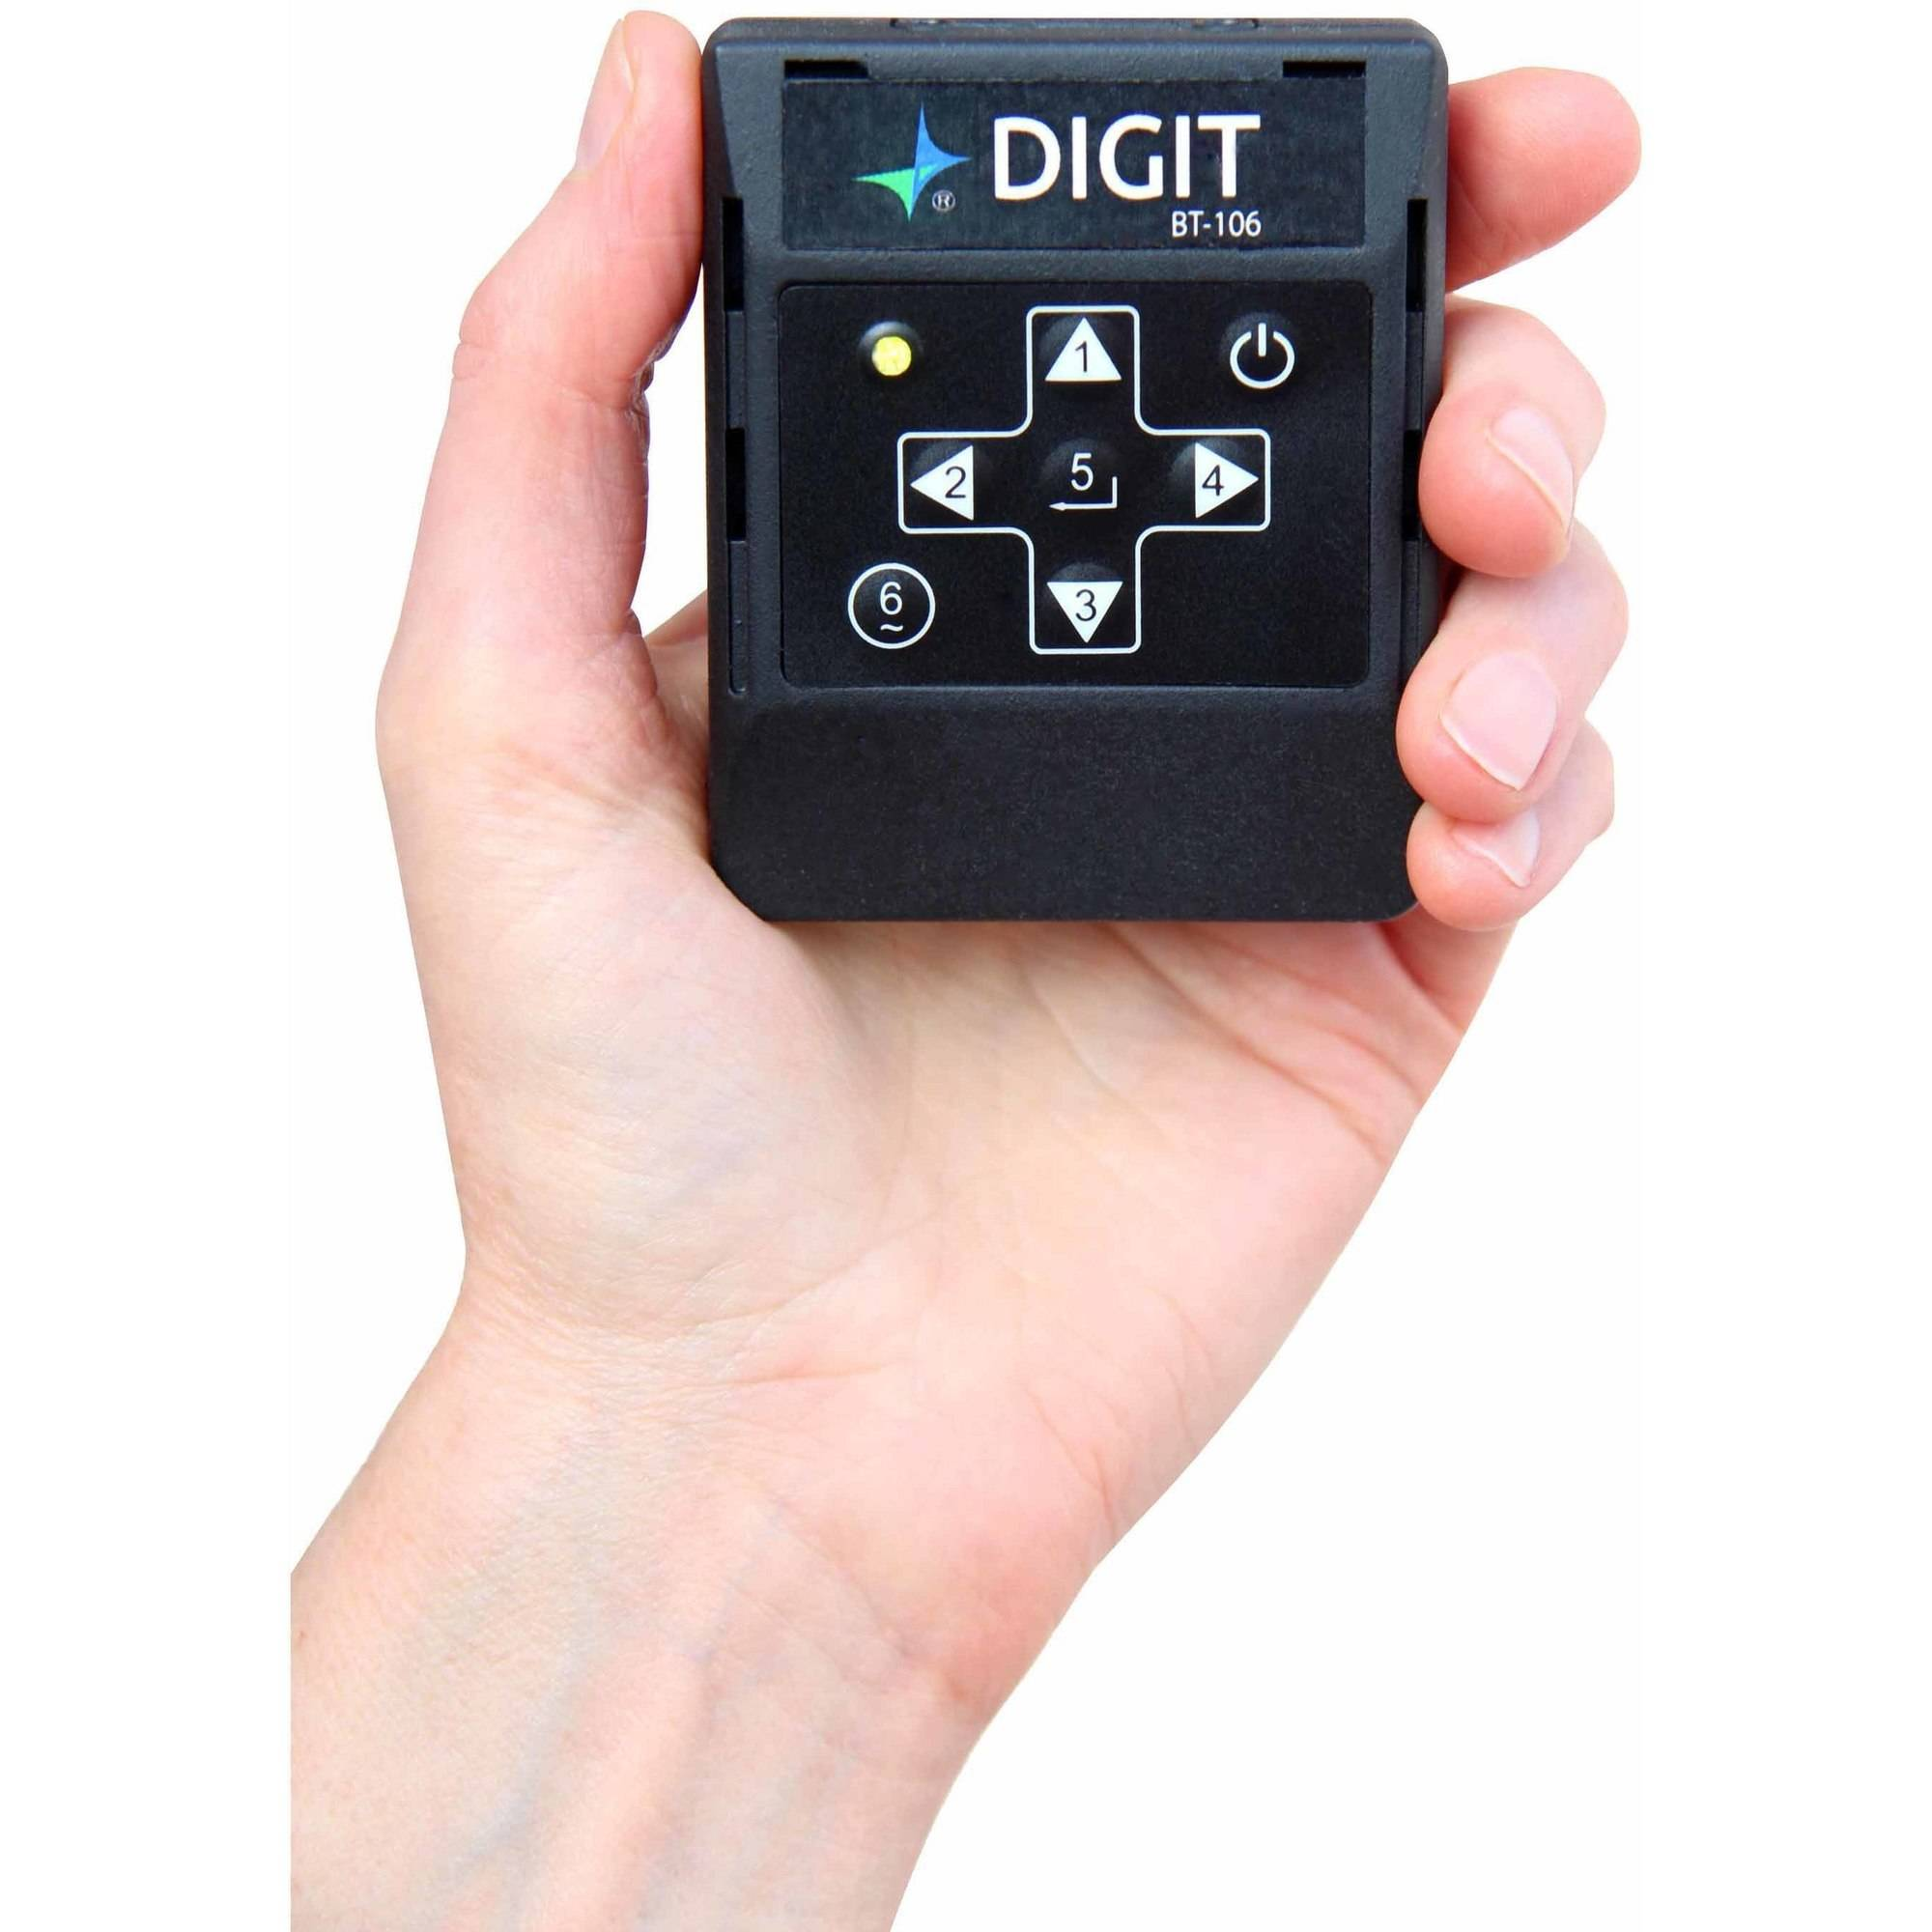 Image of Airturn Digit Bluetooth Multi-Function Remote